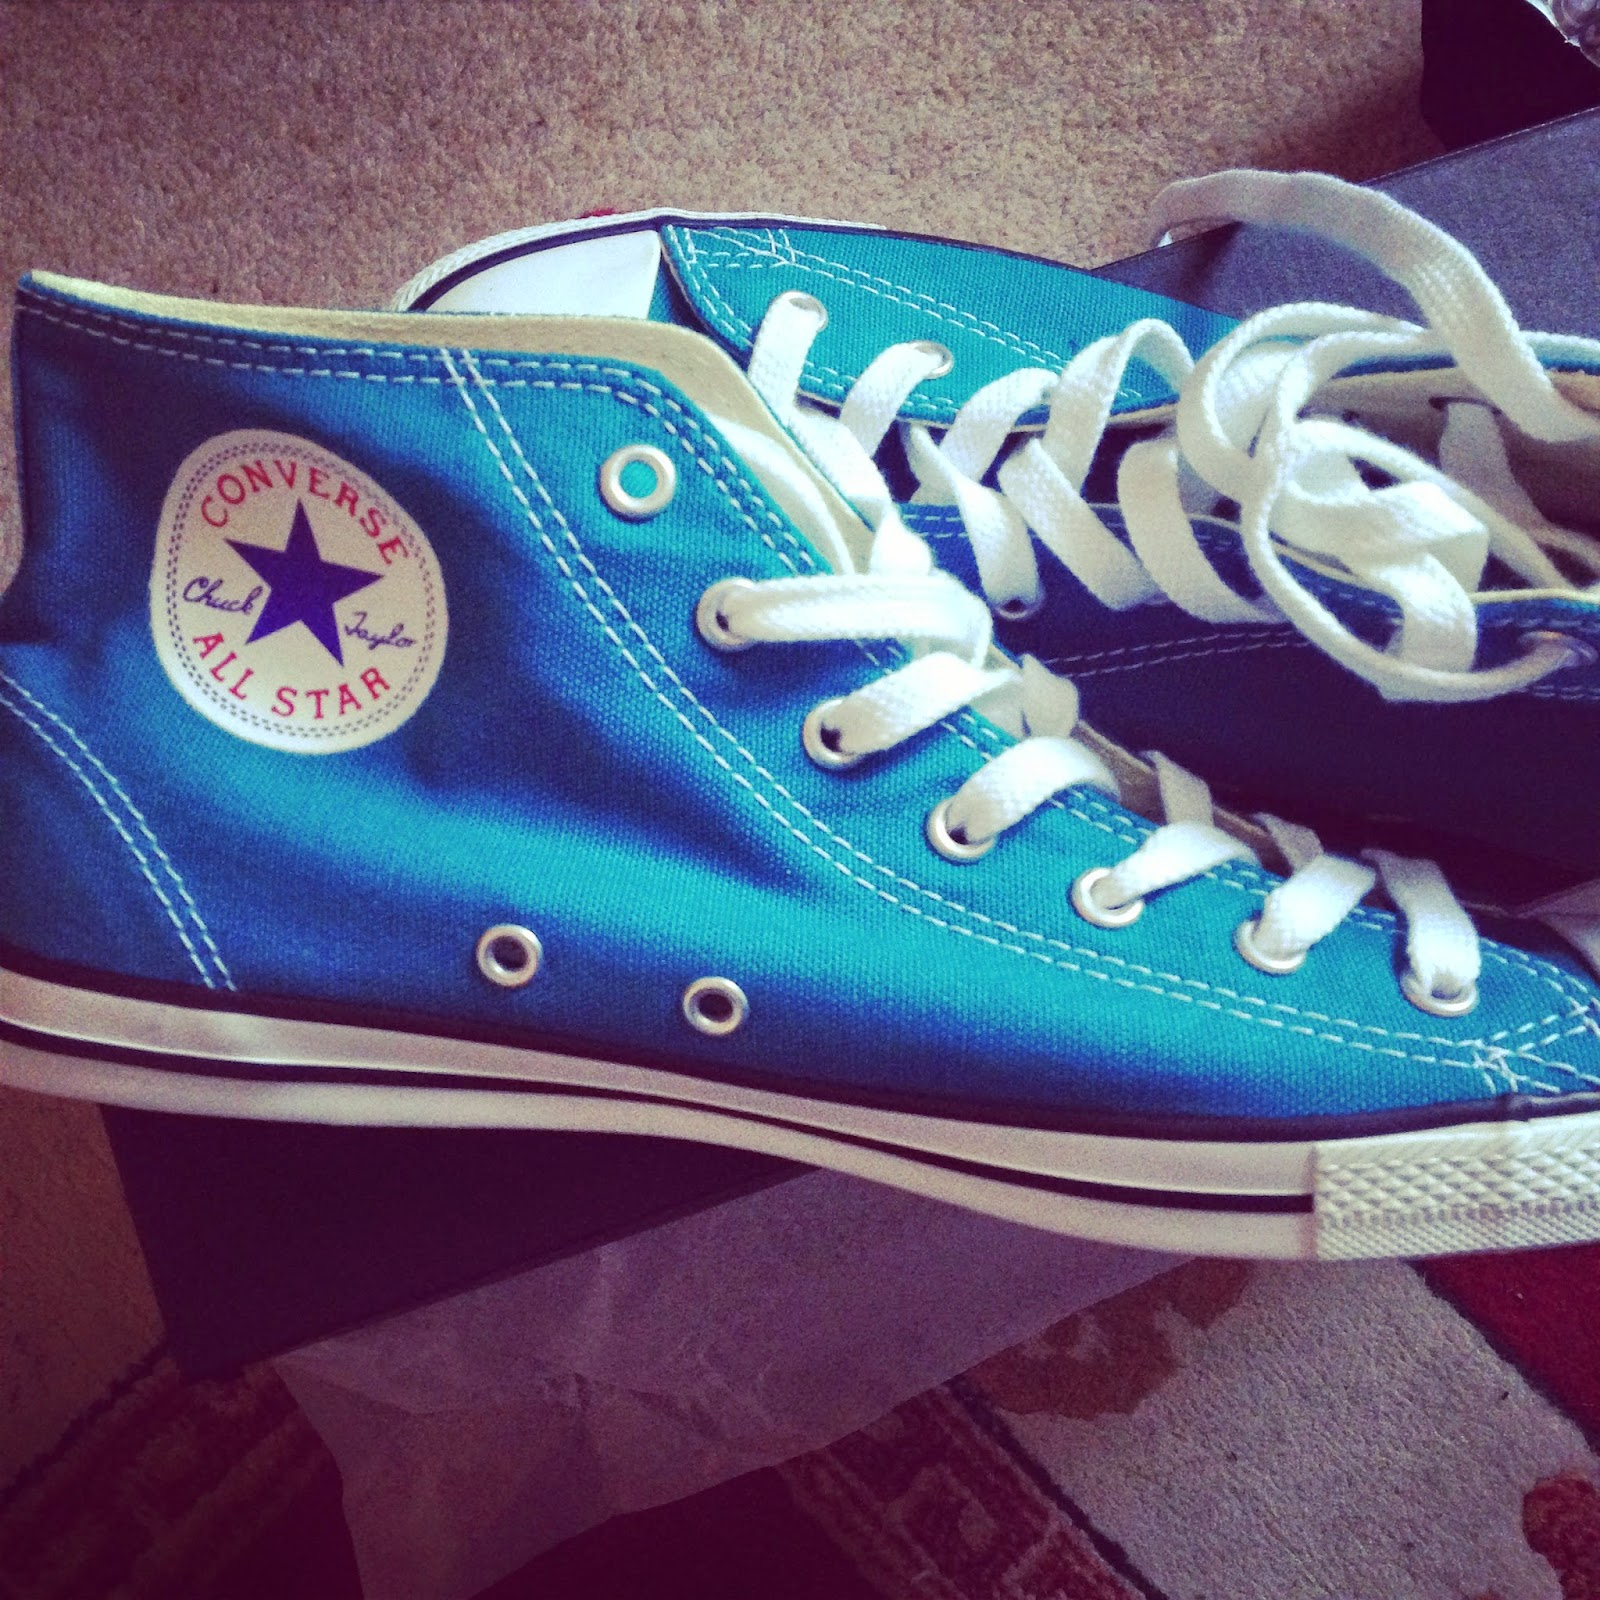 Converse Mid-tops Teal